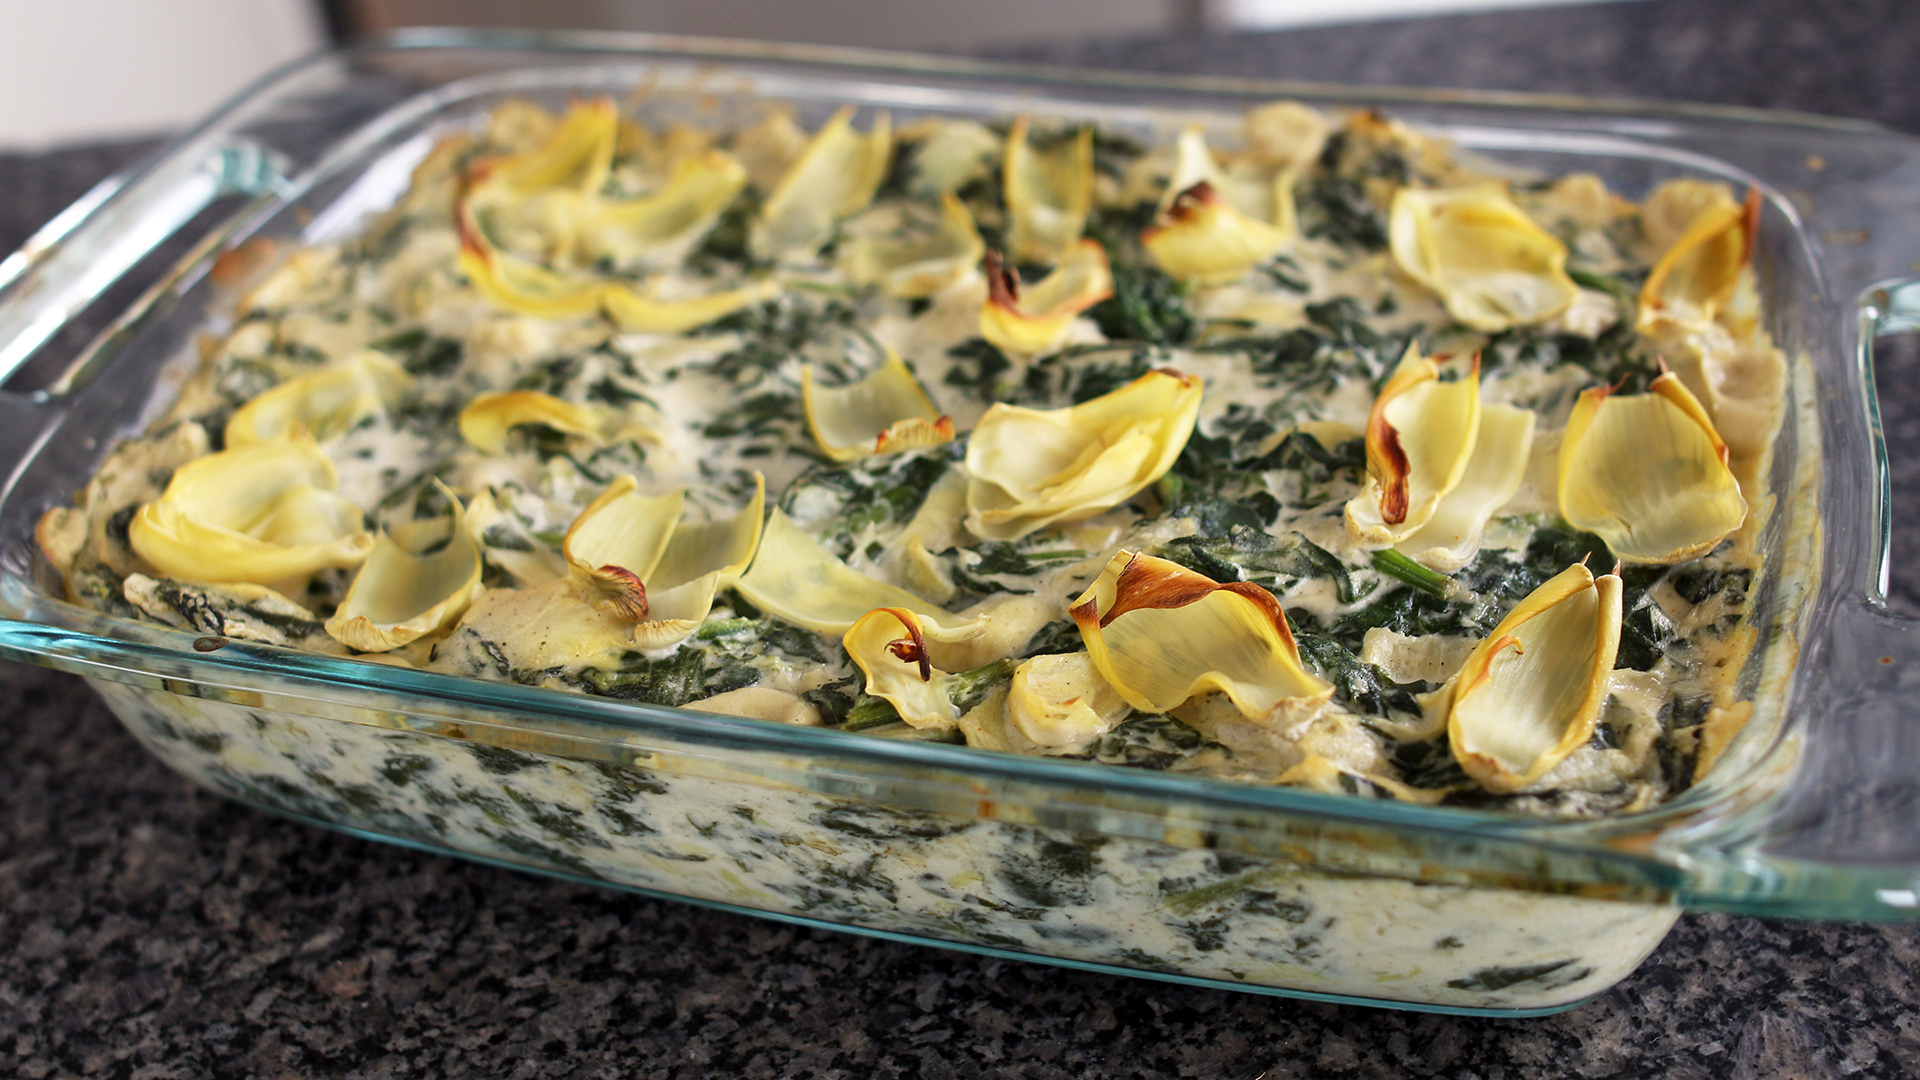 Spinach Artichoke Dip with Crudités - TODAY.com